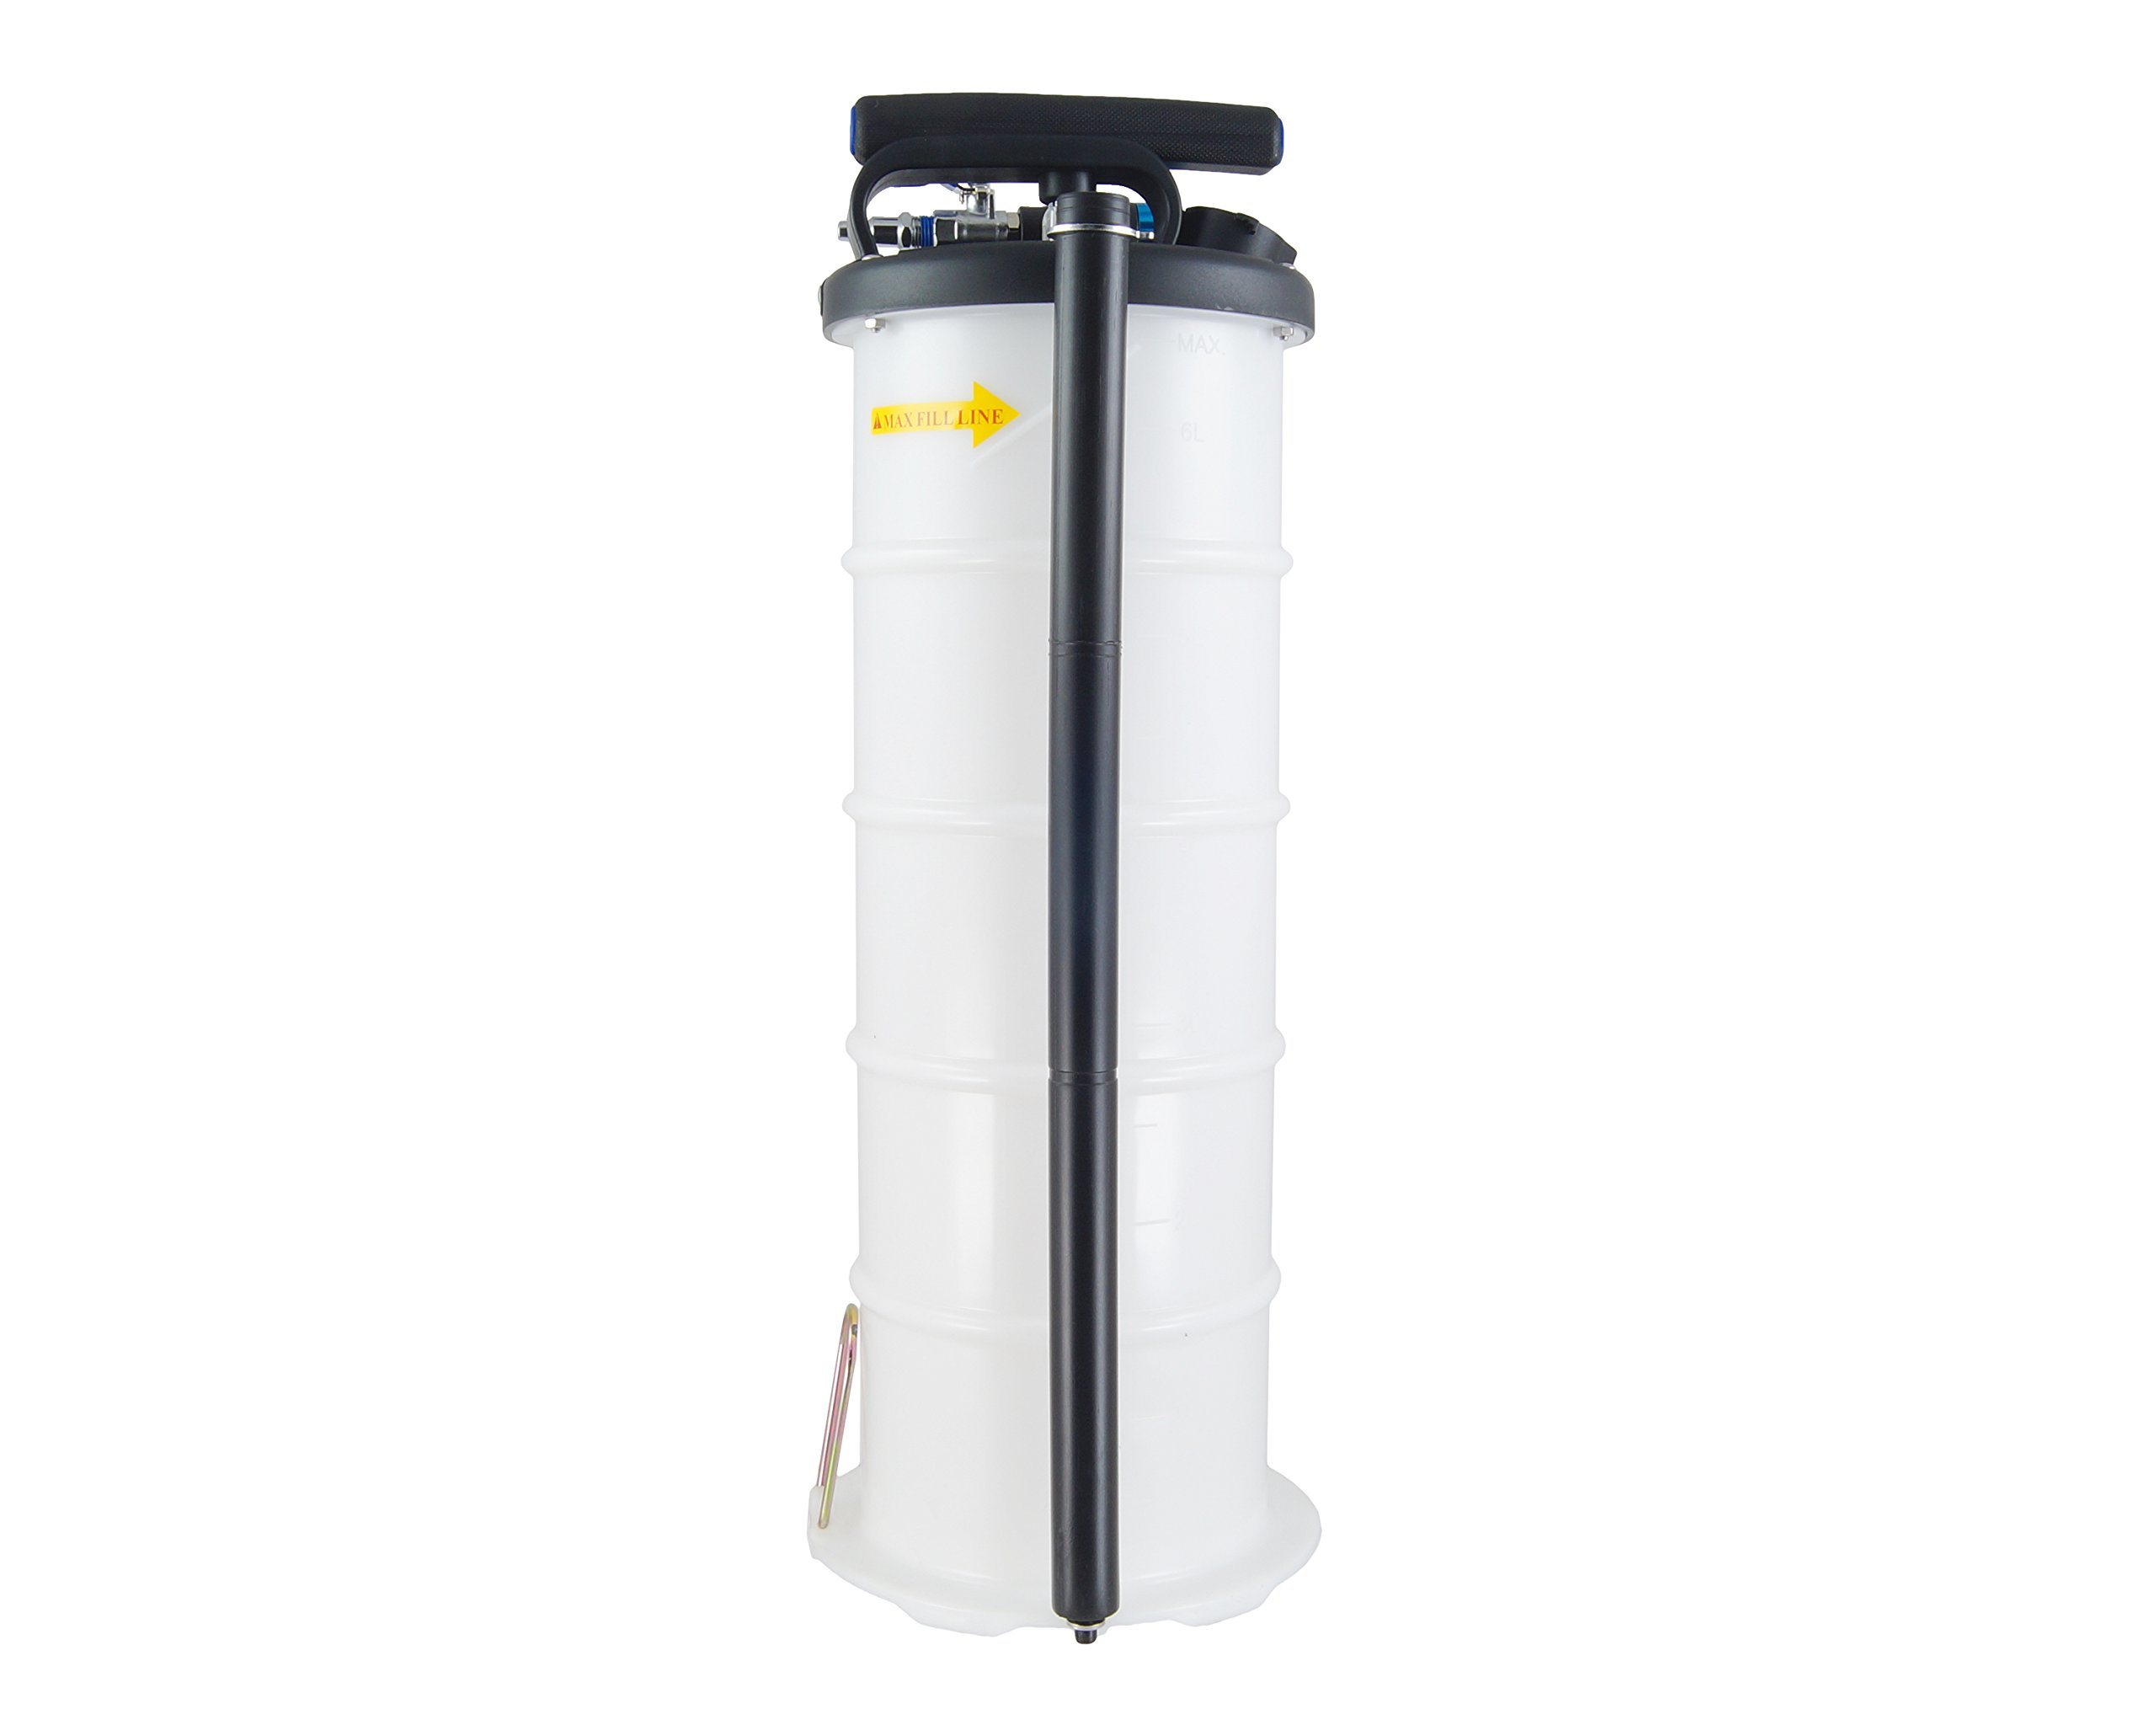 EXtoil 6 Liter Professional Manual/Pneumatic Oil Extractor by EXtoil (Image #2)